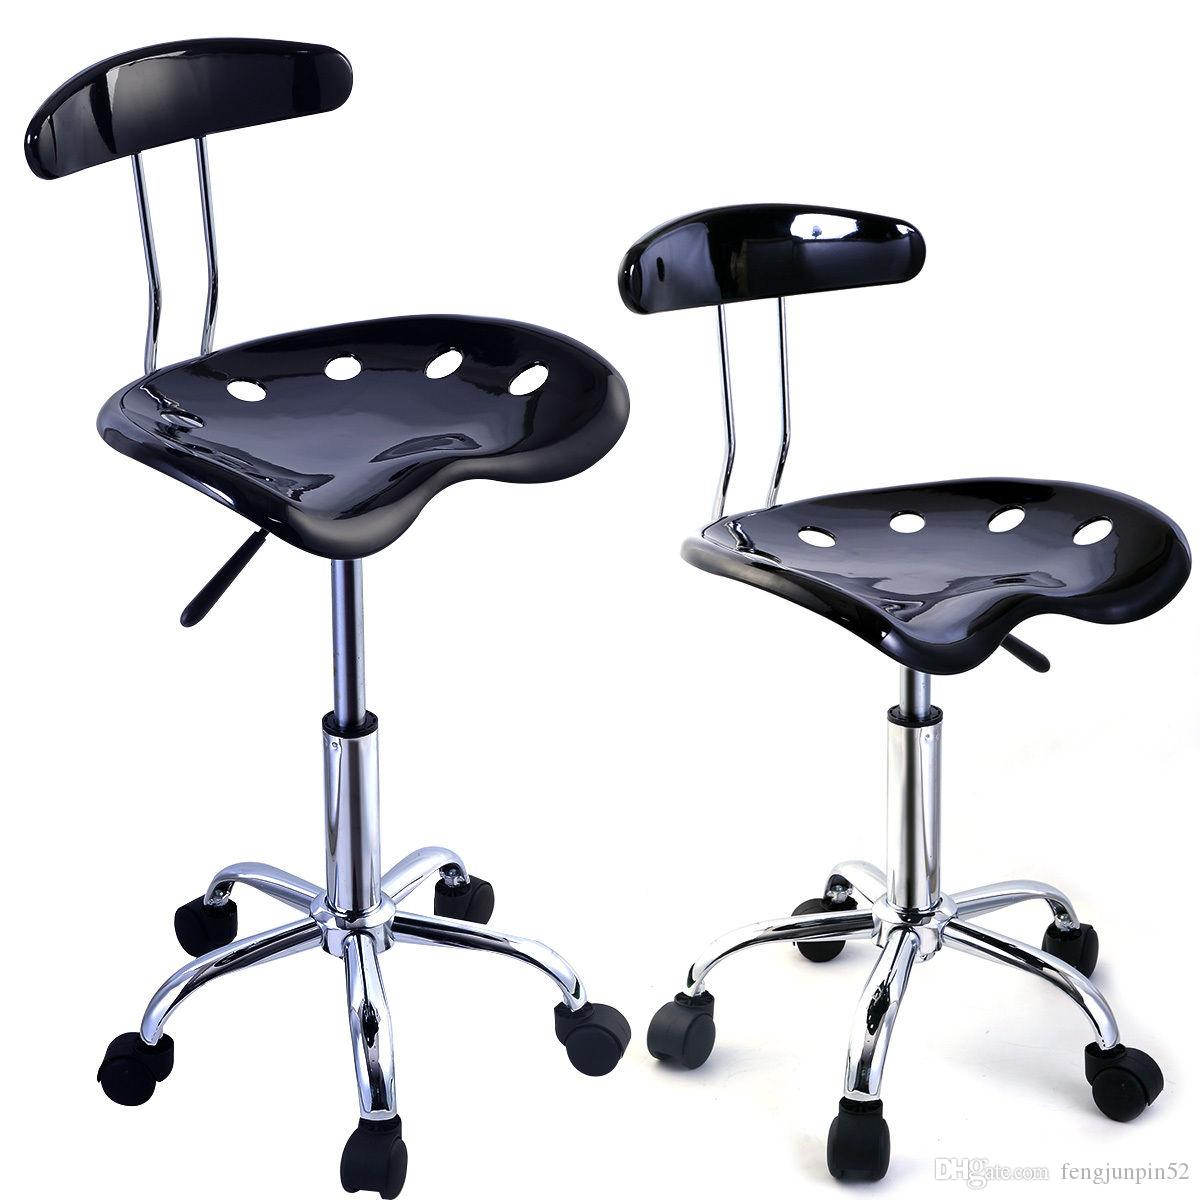 Online Cheap Adjustable Bar Stools Abs Tractor Seat Swivel Chrome Kitchen  Breakfast Black By Fengjunpin52   Dhgate.Com